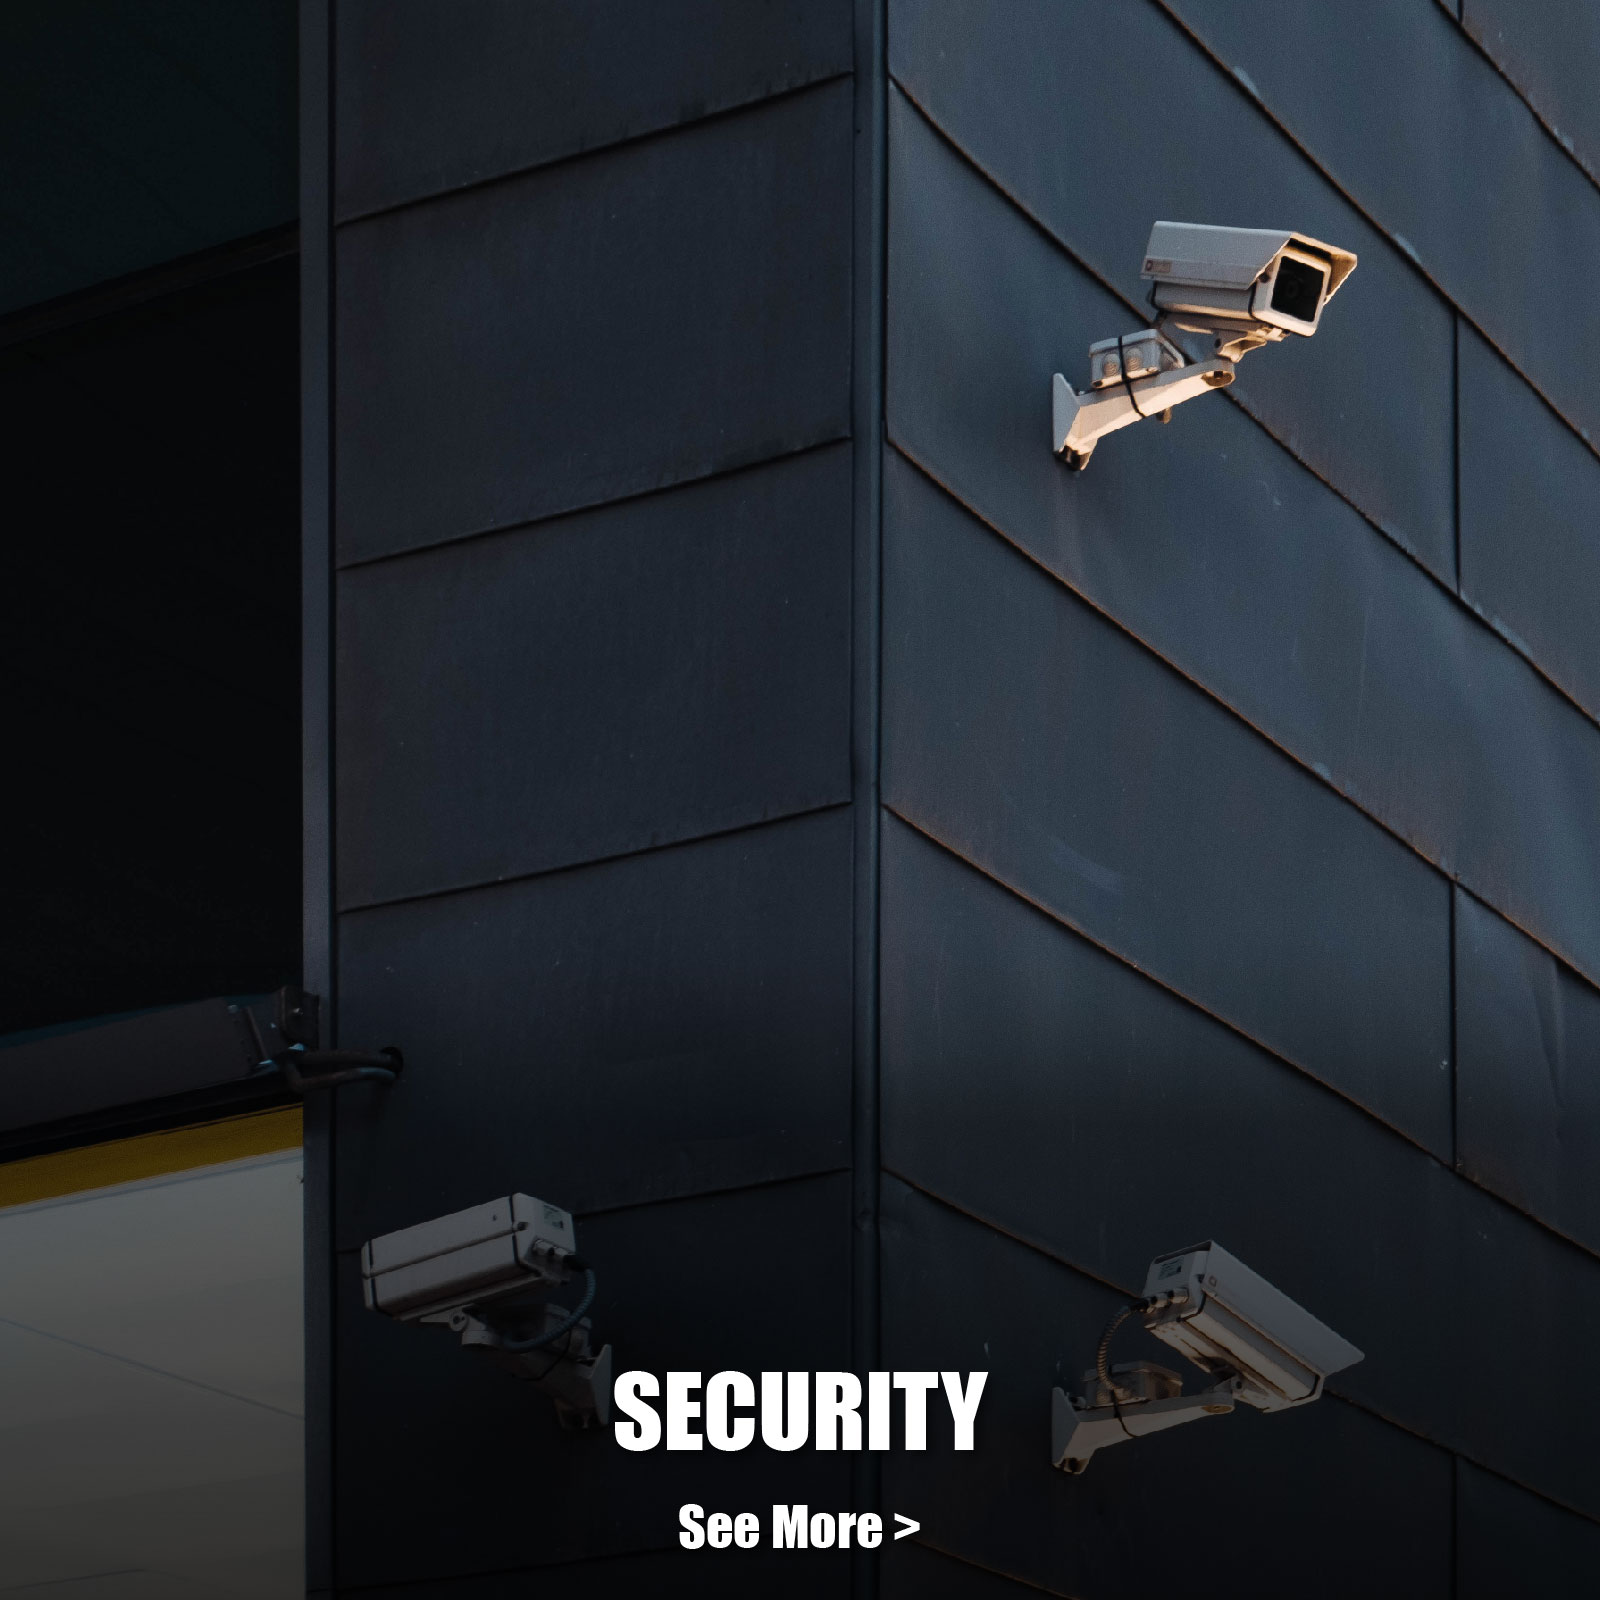 Security Image V2 - Our Businesses Section - Homepage